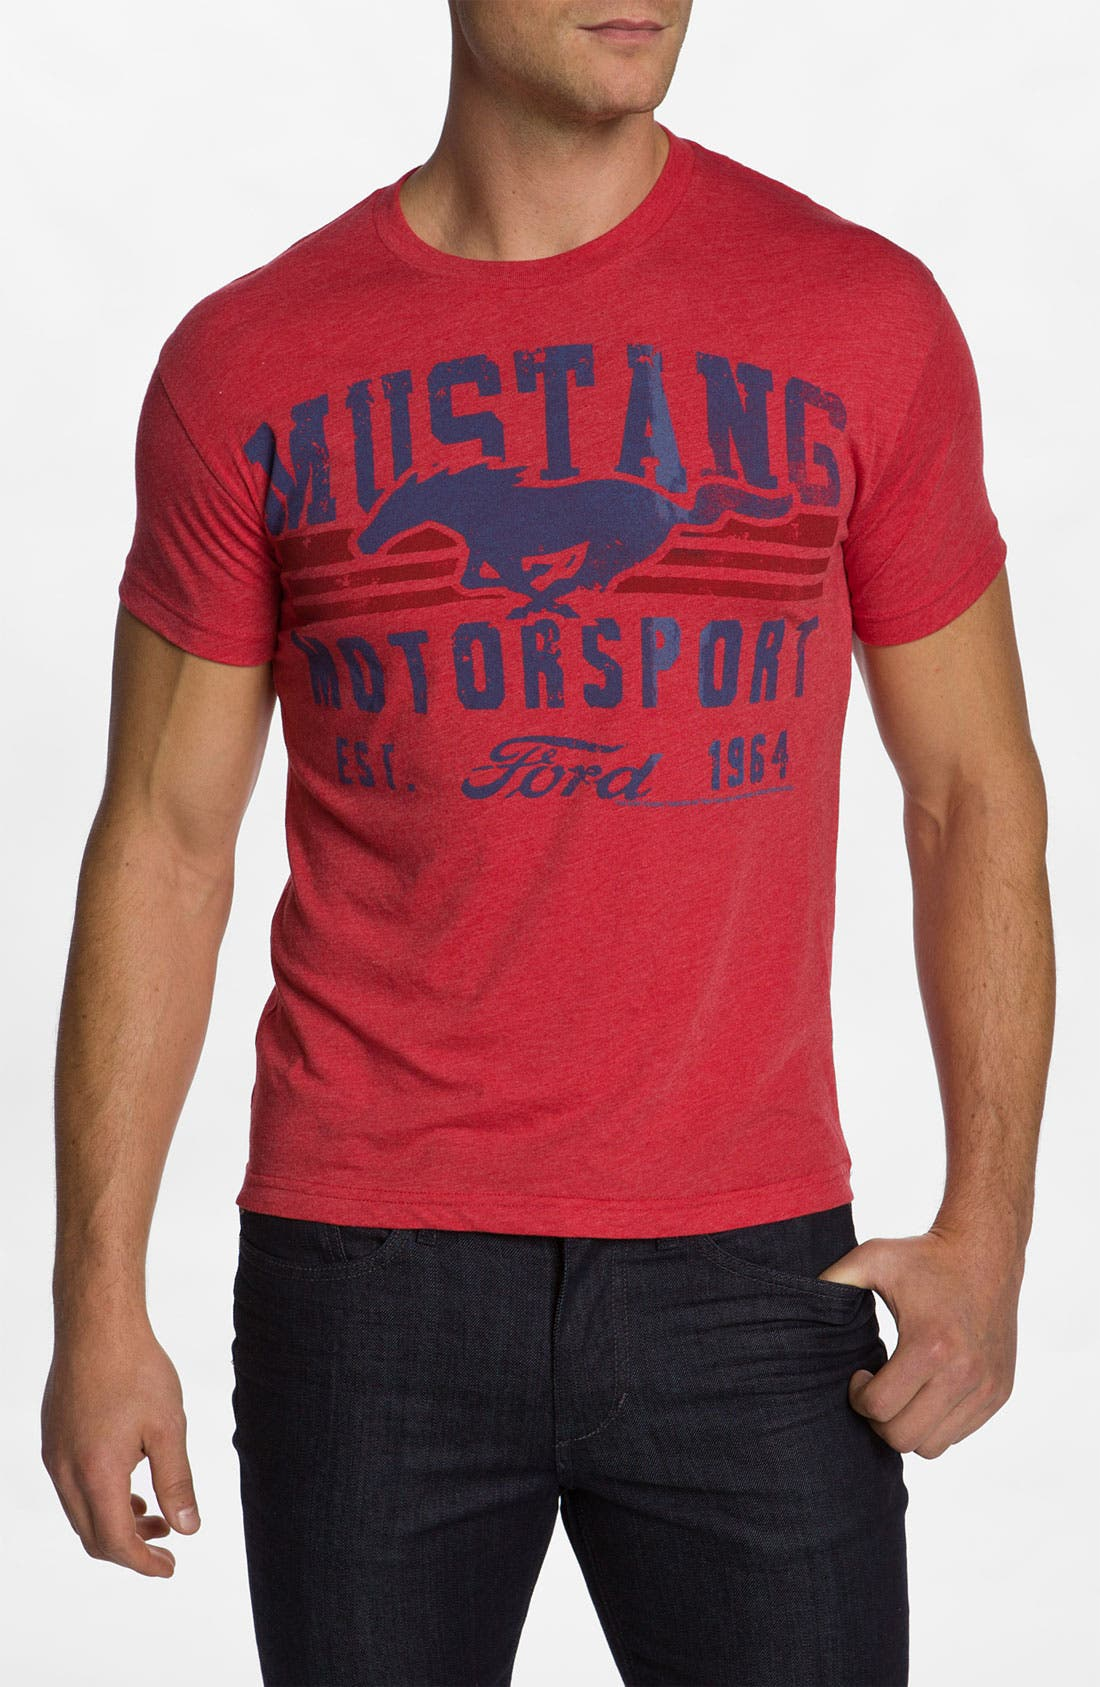 Alternate Image 1 Selected - Free Authority 'Mustang Motor' Graphic T-Shirt